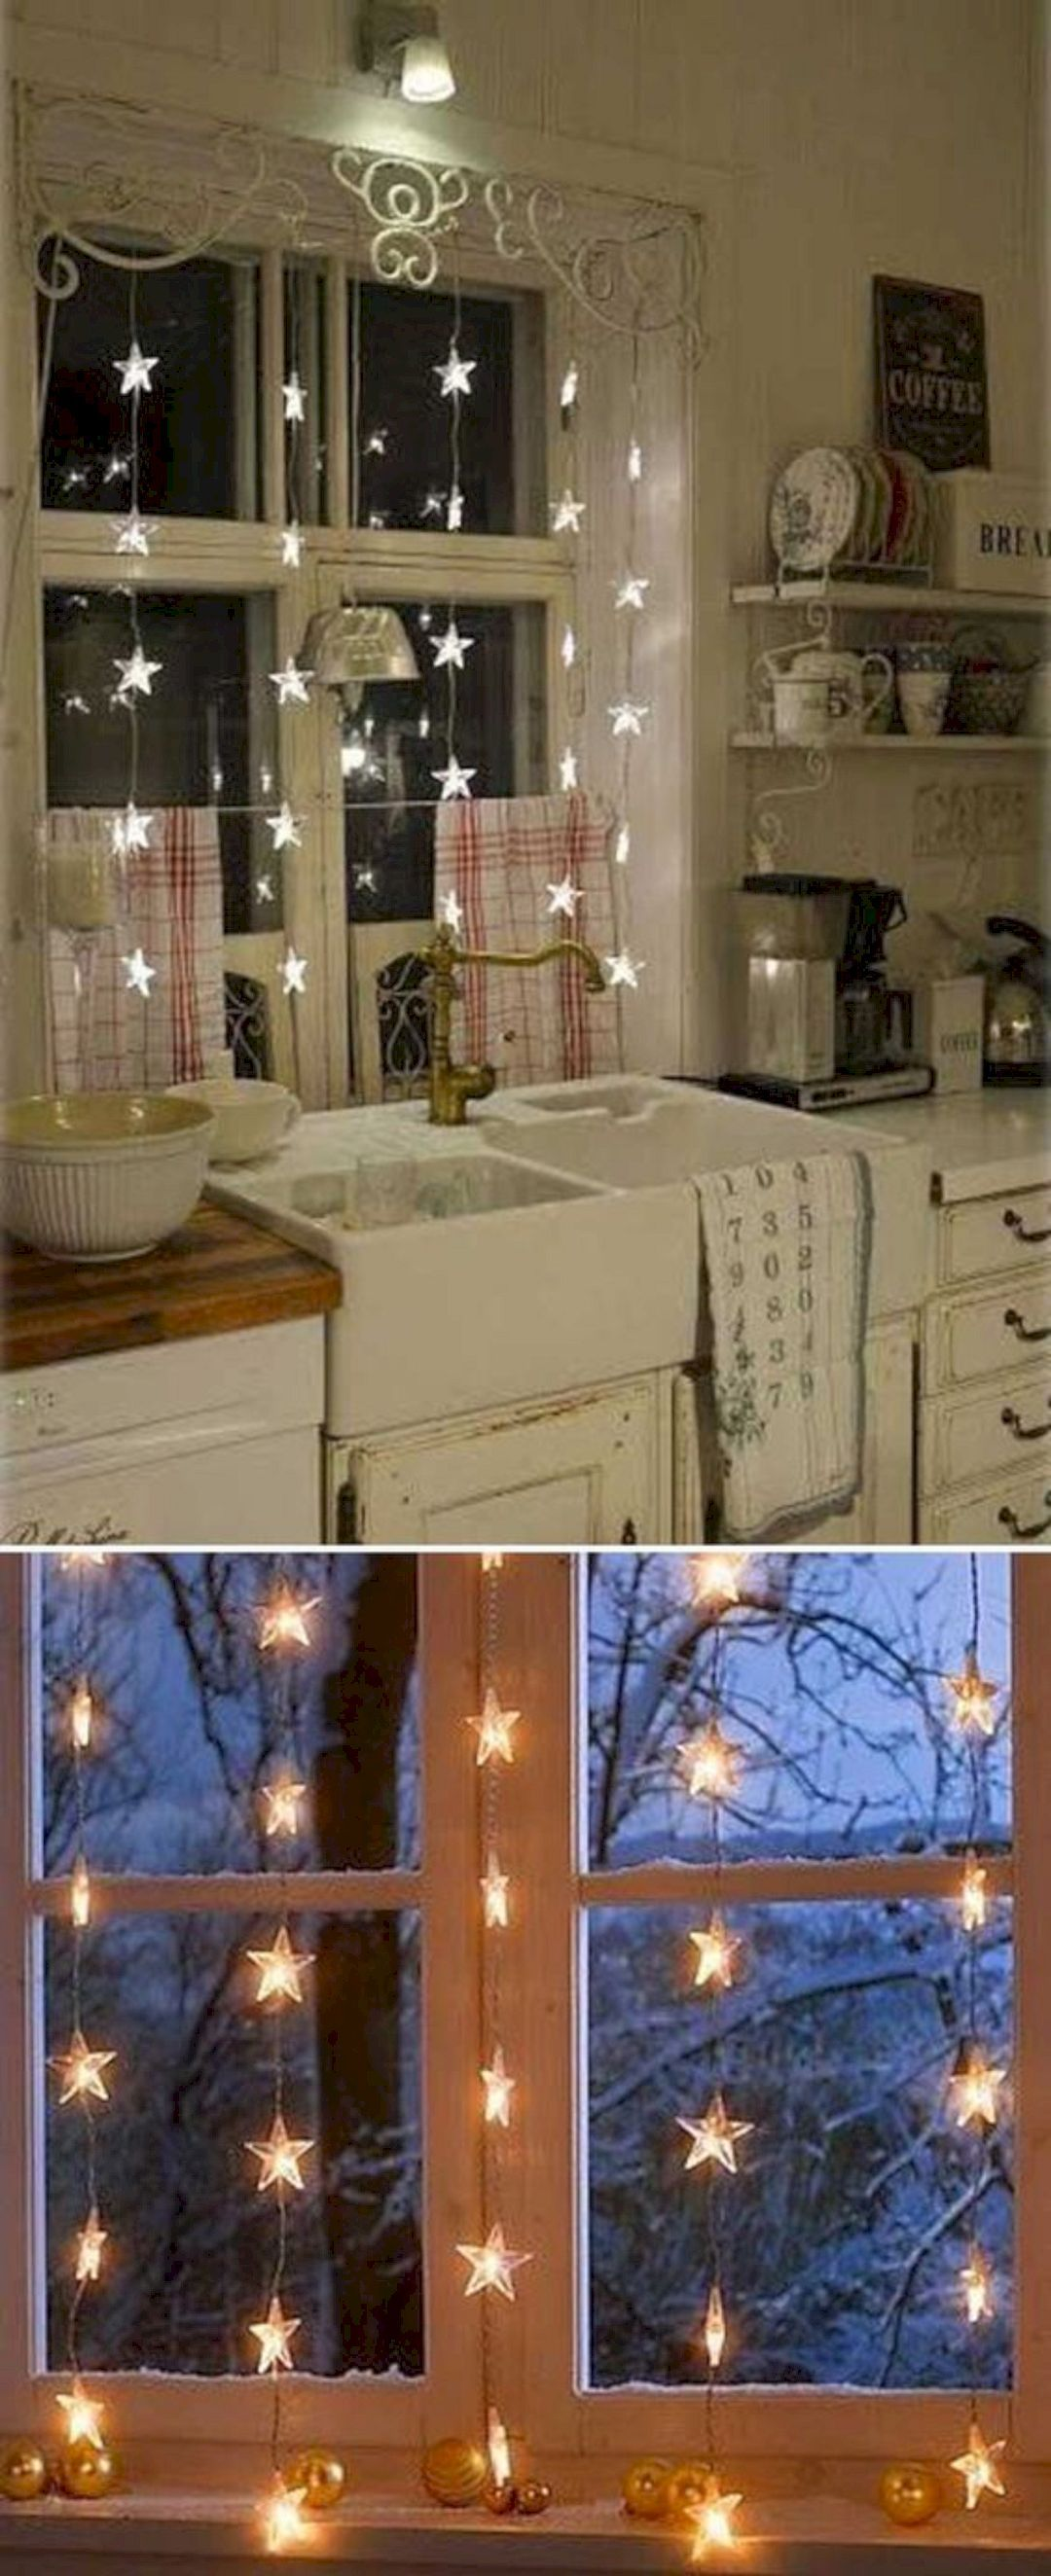 Holiday Decorating Ideas For Kitchen Window Html on decorating above kitchen window ideas, decorating ideas for living room, decorating ideas for fireplaces, decorating ideas for decks, decorating ideas for doors, country decorating with old windows, decorating ideas for floors, decorating ideas for mirrors, decorating ideas for dining room, decorating ideas for vaulted ceilings, decorating ideas for bedrooms,